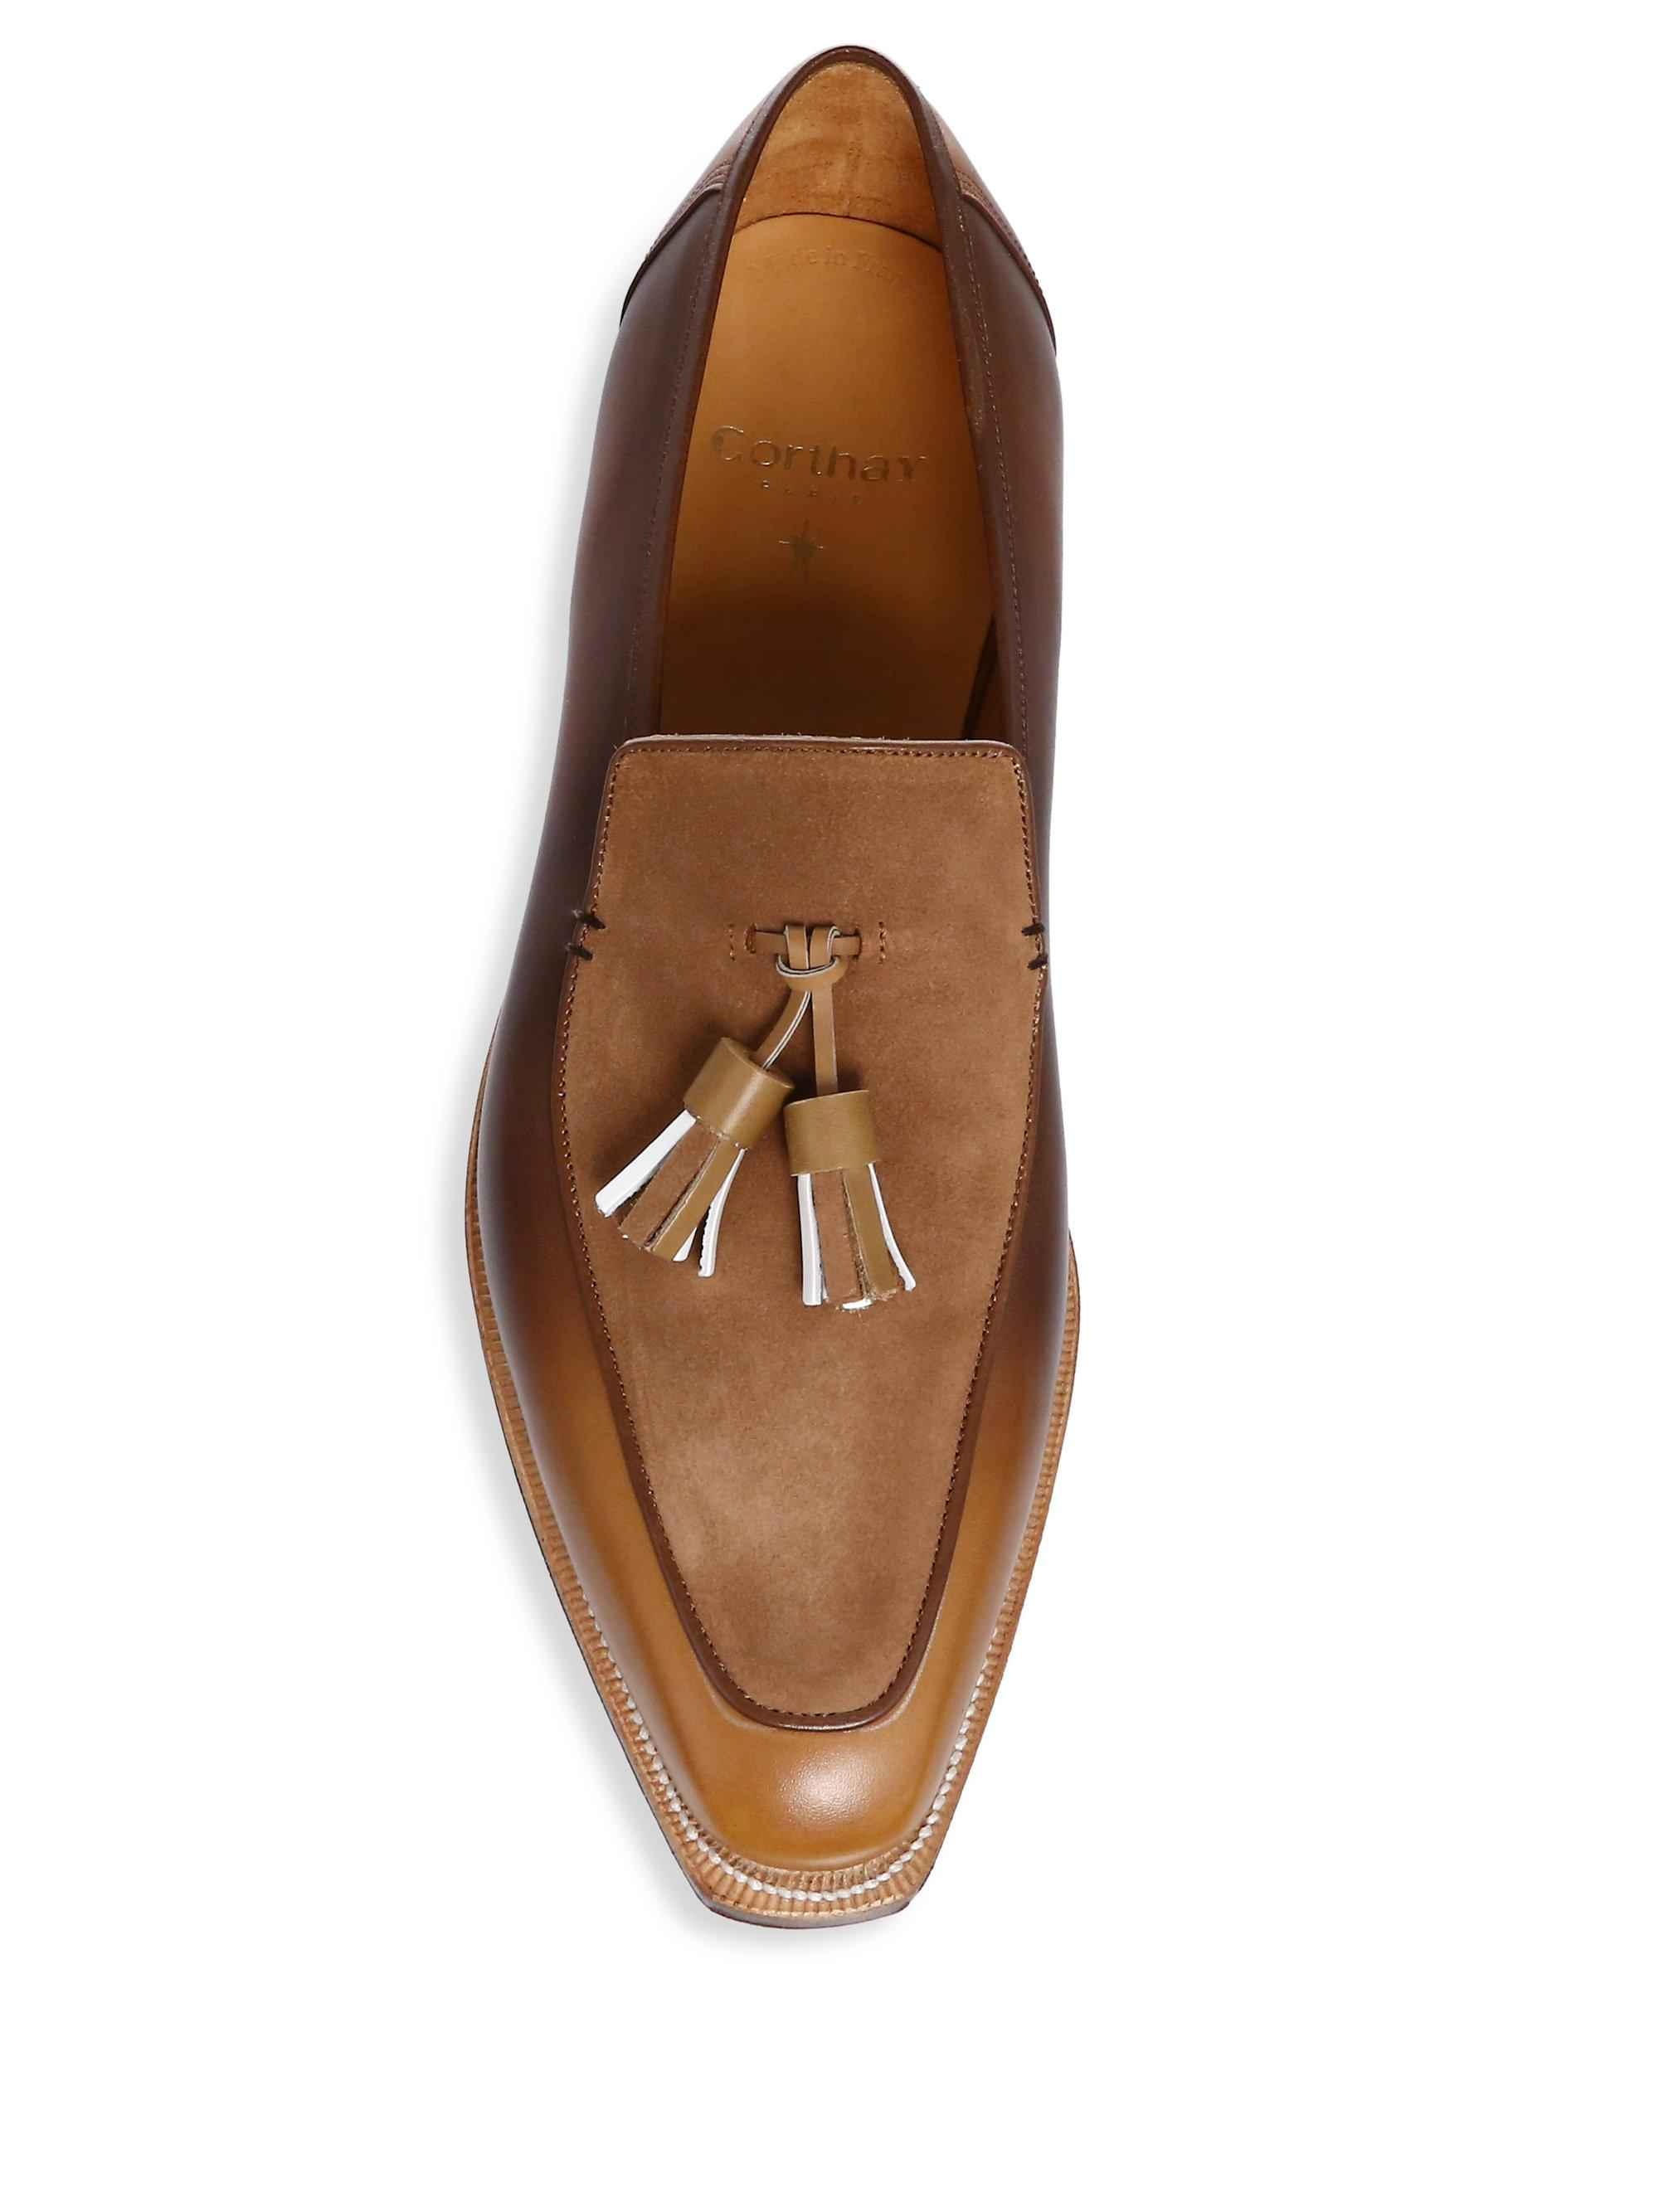 CORTHAY Dover Tassel Loafers EEuDin